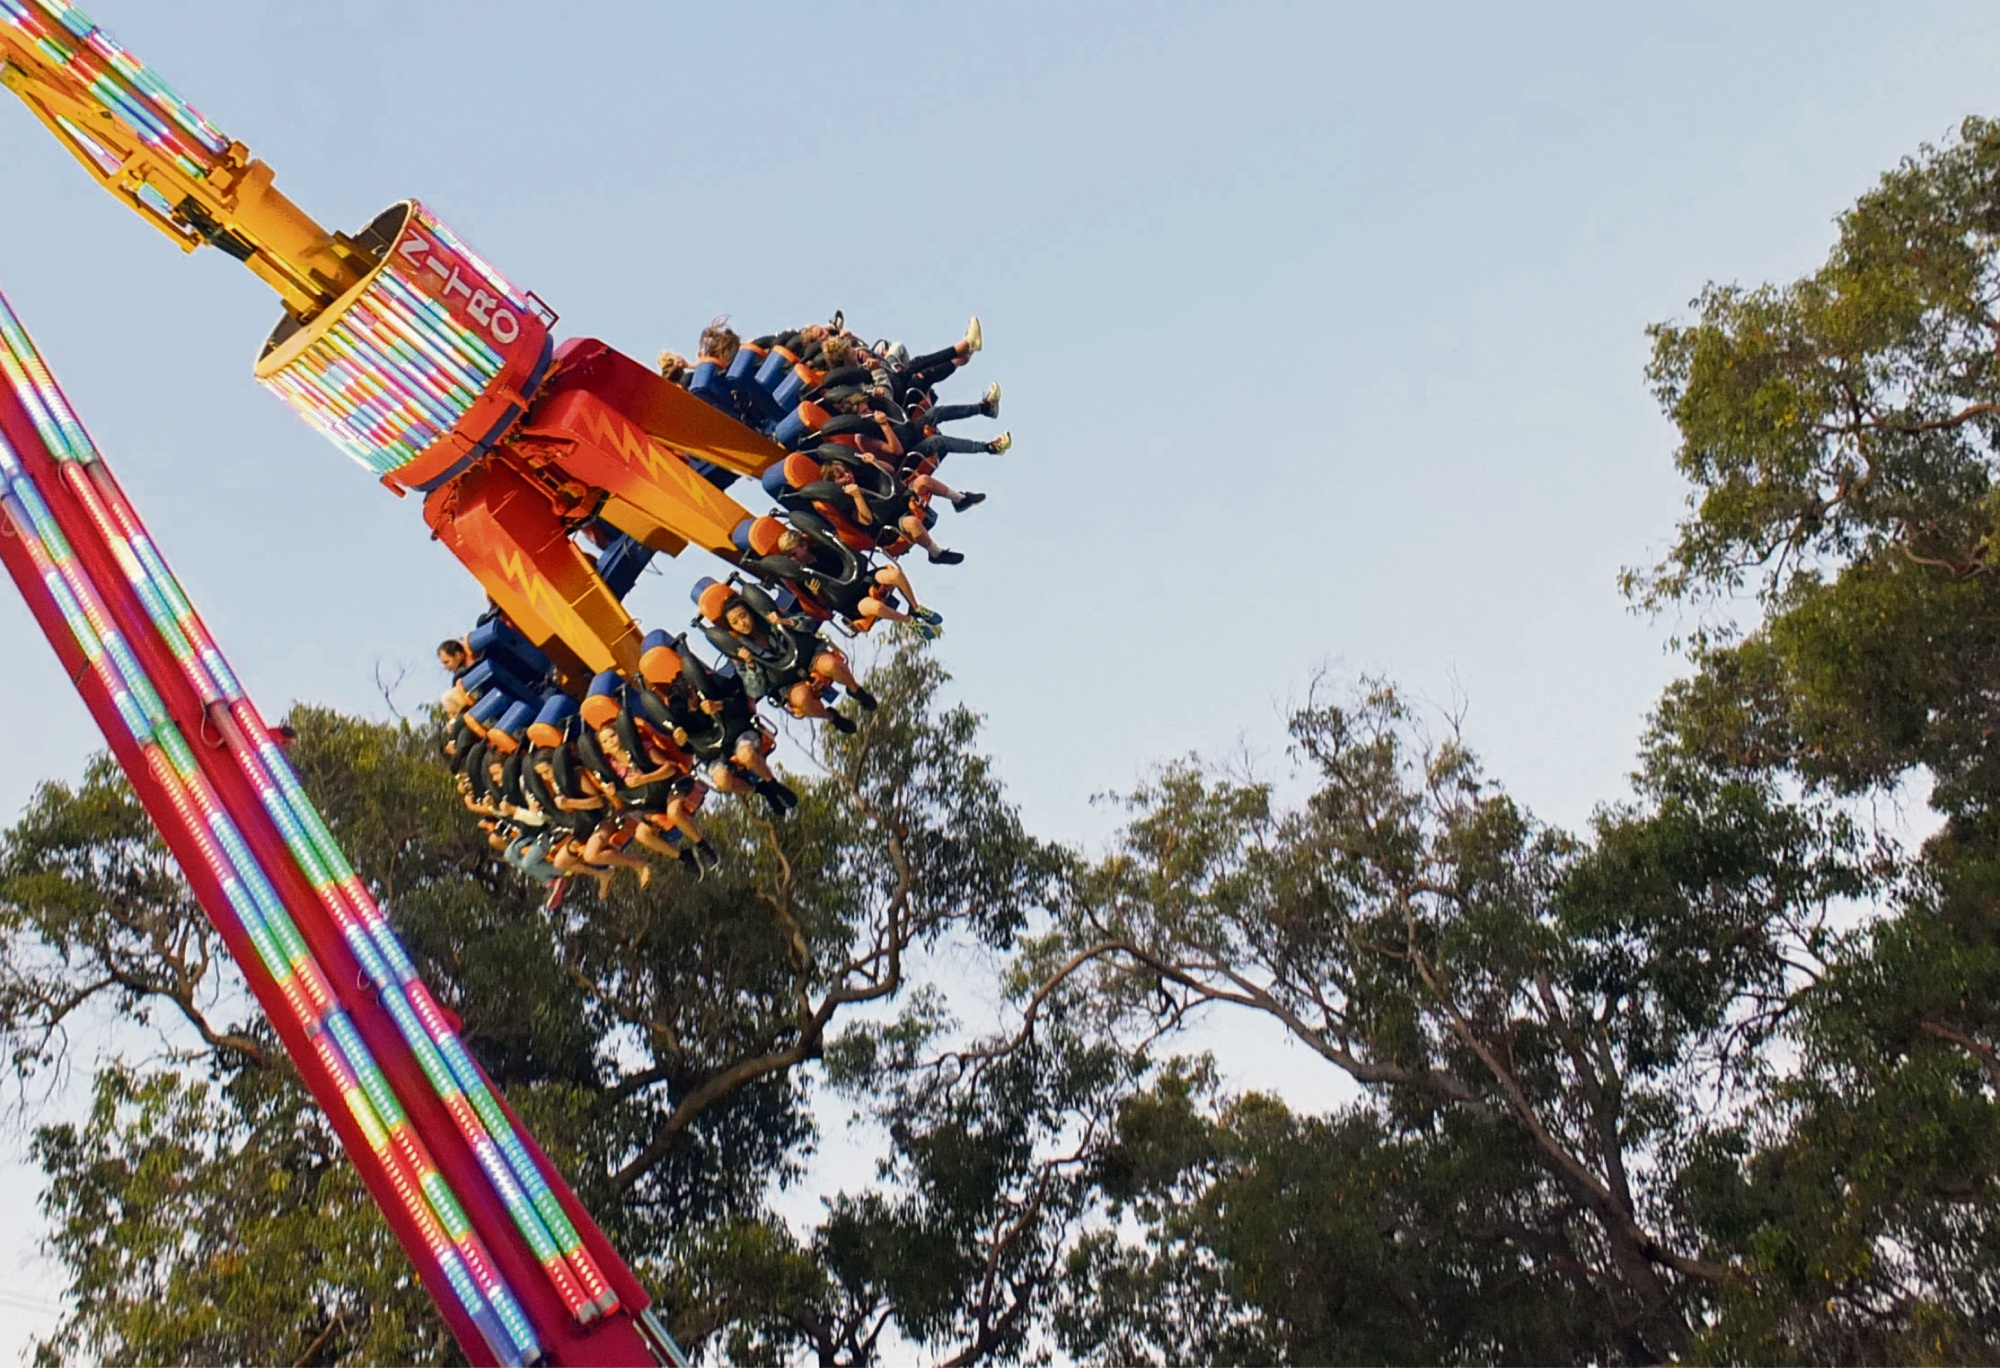 Nitro riders soar above the gum trees at the Wanneroo Showground.